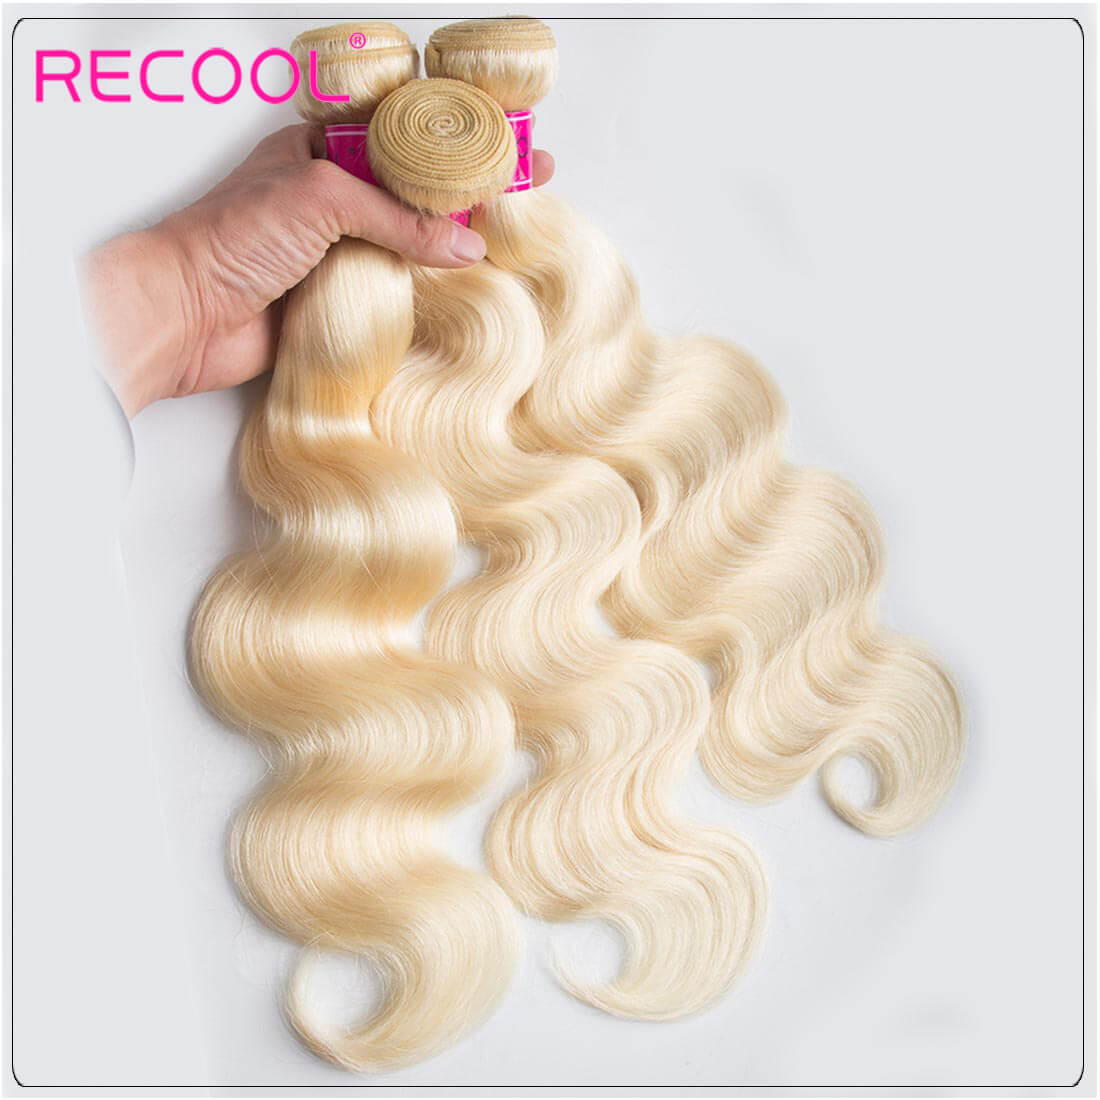 Blonde Hair Bundles 613 Virgin Hair Body Wave, 100% Virgin Blonde Human Hair Weave Body Wave Bundles 1